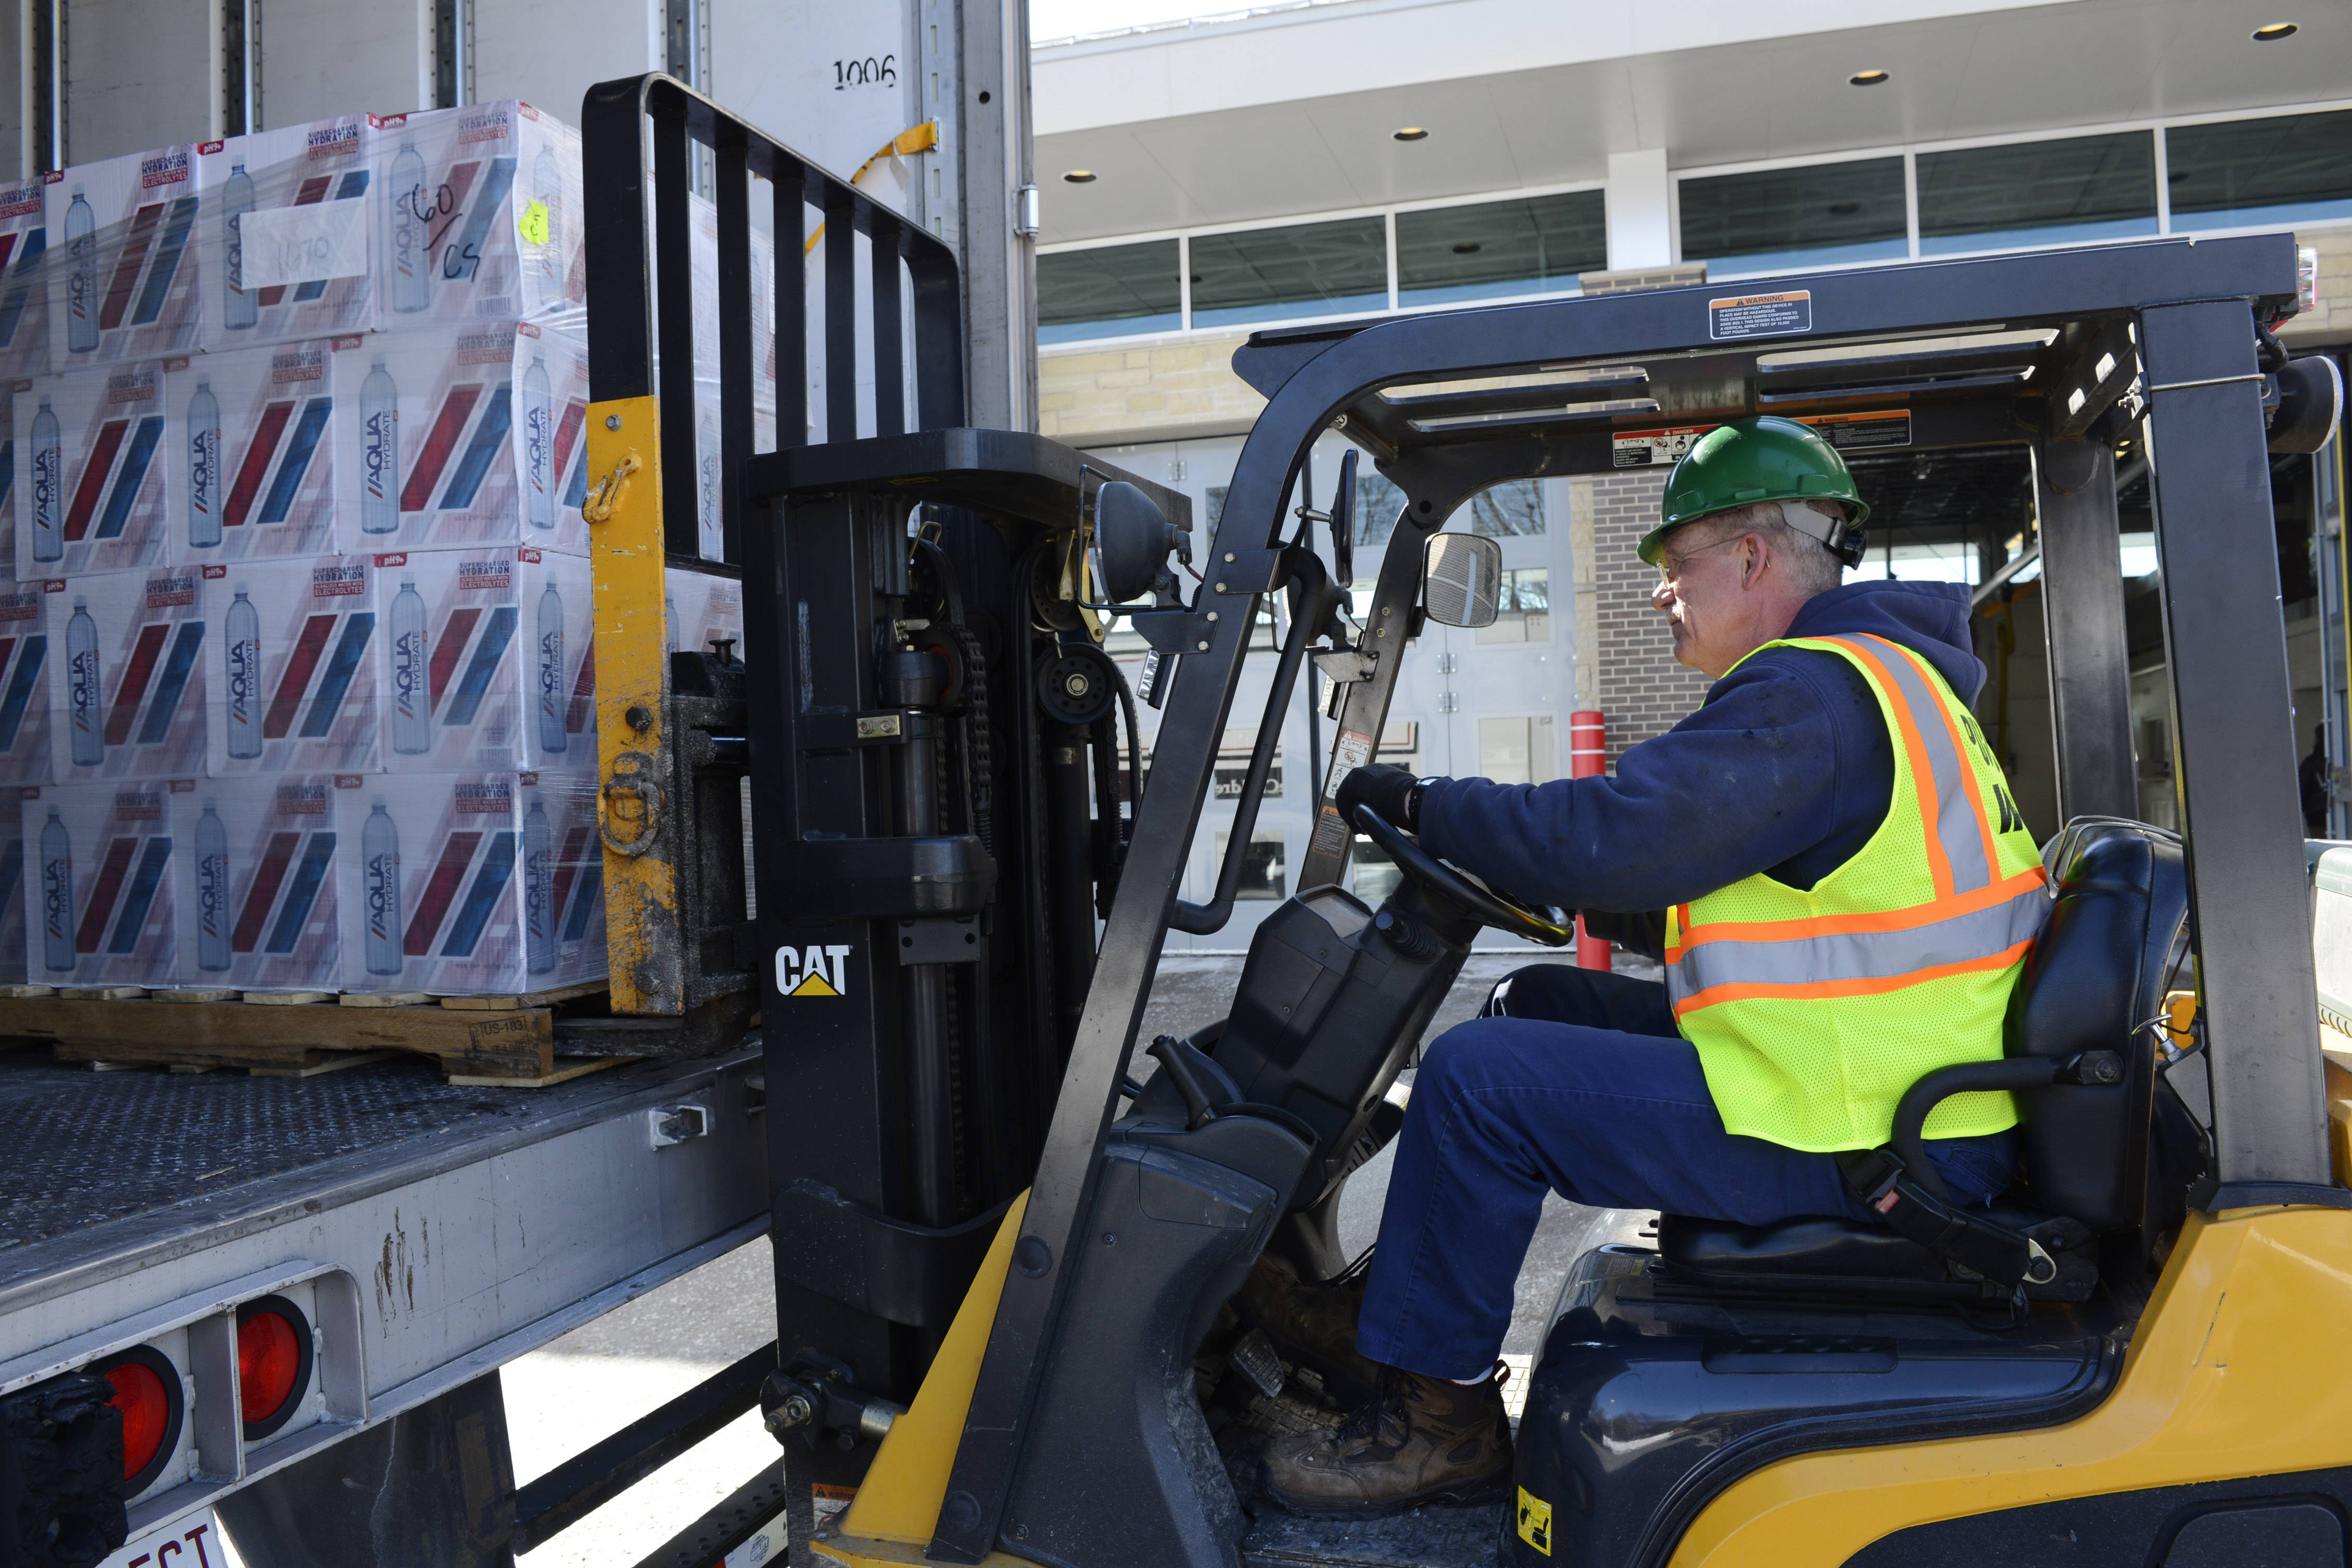 Steve Balogh of Mount Prospect Public Works lifts a pallet of bottled water donated Thursday by Feed the Children delivers at Mount Prospect Fire Station 14 on Kensington Road. The donation will benefit more than 400 struggling families in Mount Prospect.